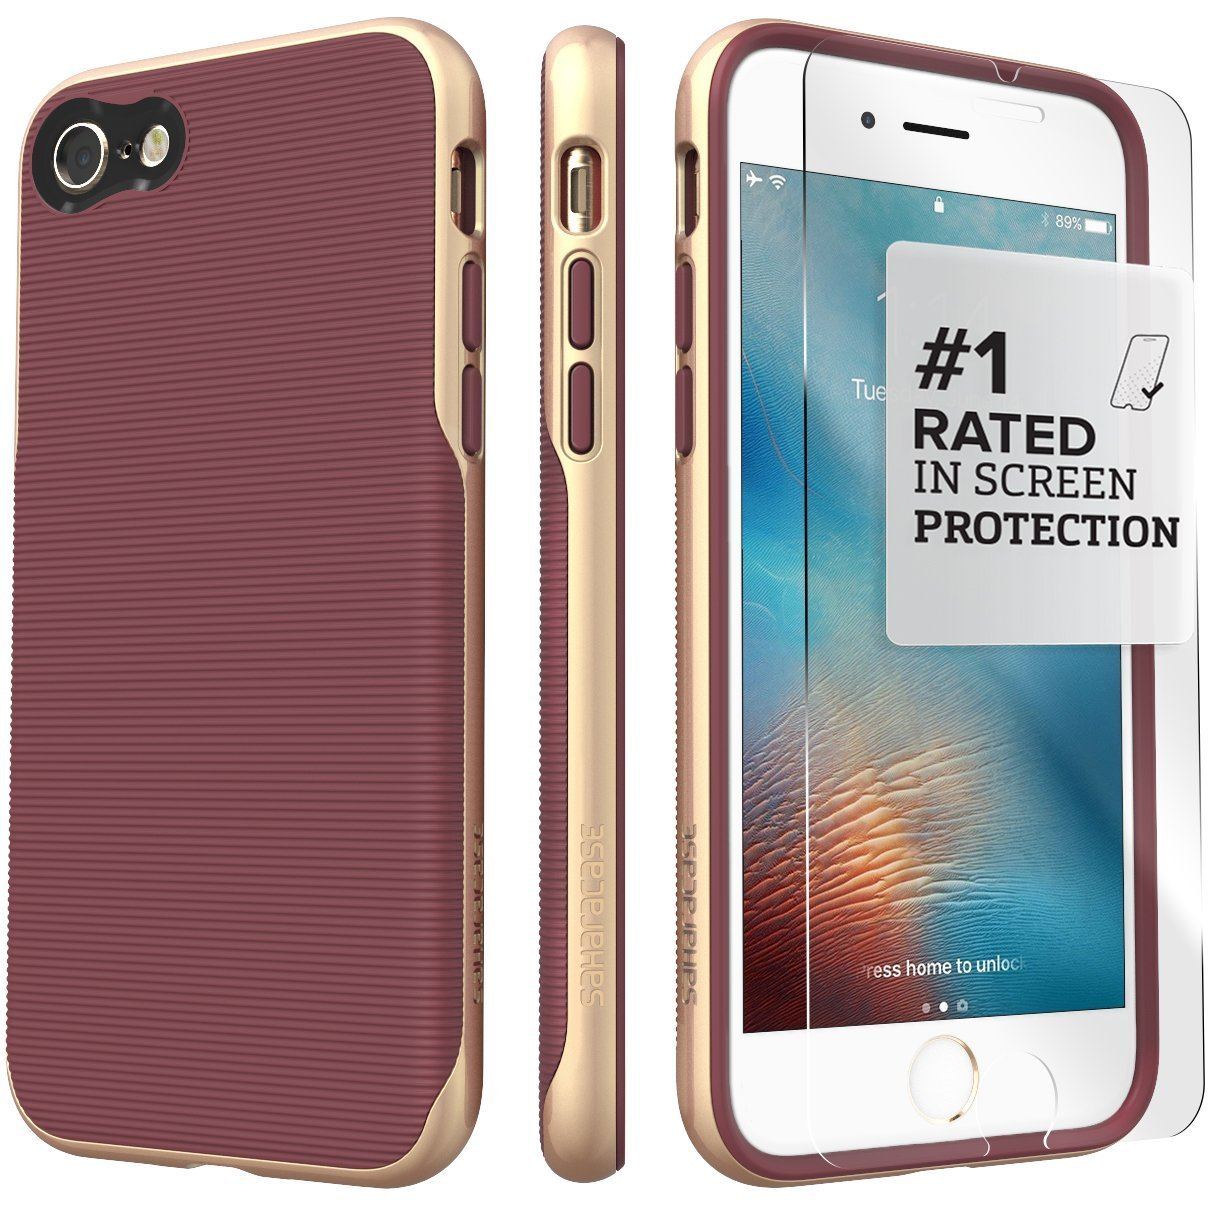 iPhone 8 Case and 7 Case, SaharaCase Trend Series Protection Kit Bundle with [ZeroDamage Tempered Glass Screen Protector] Fashion Design [Shockproof Bumper] Slim Fit - Gold Plum